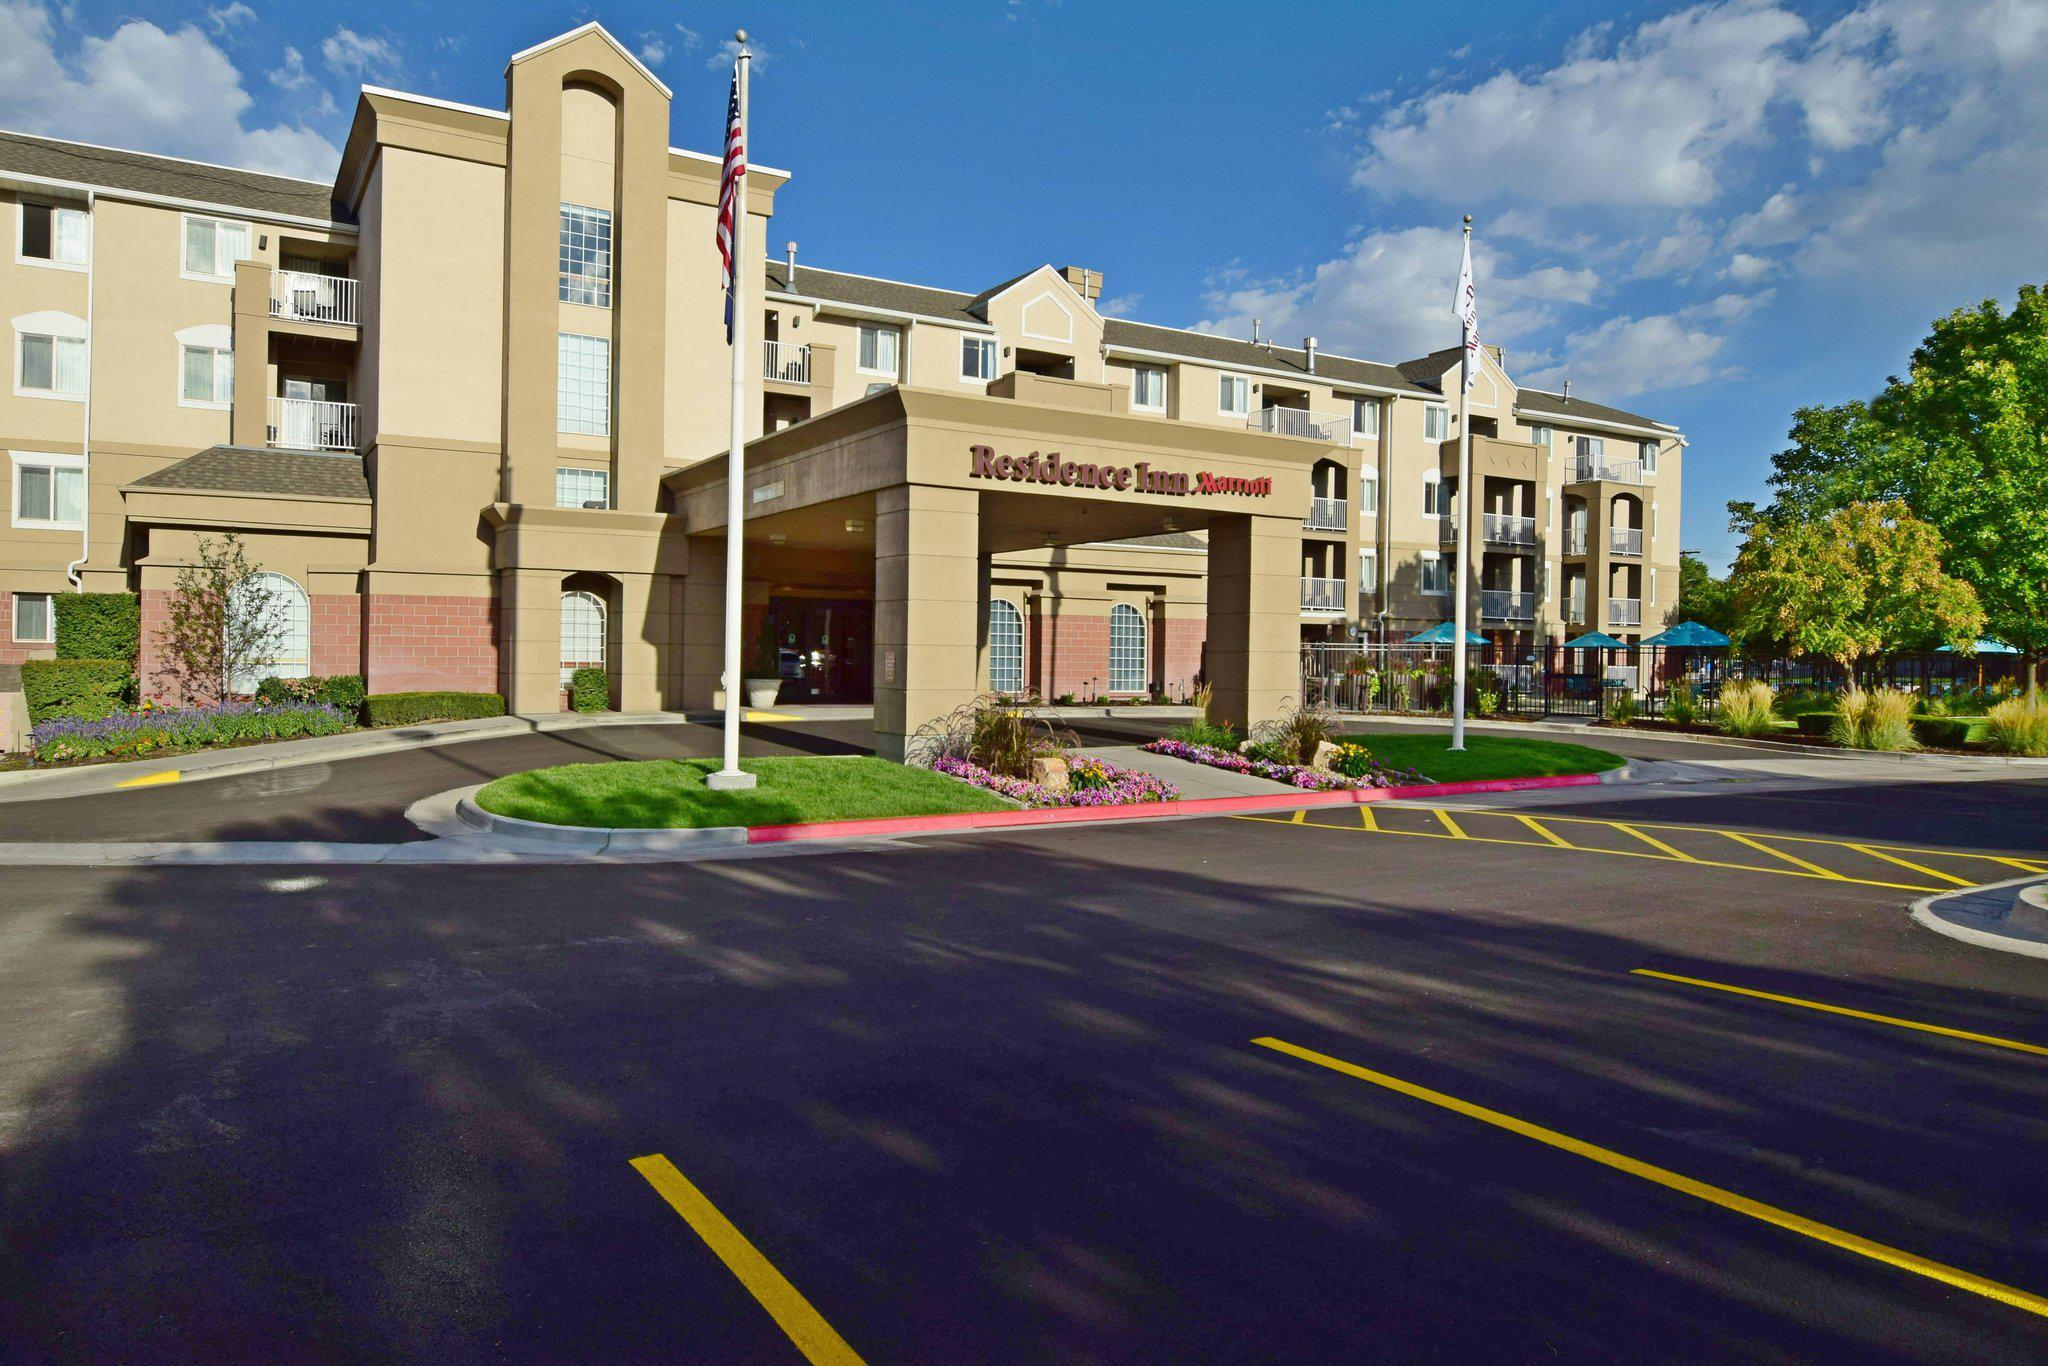 Residence Inn by Marriott Salt Lake City Downtown